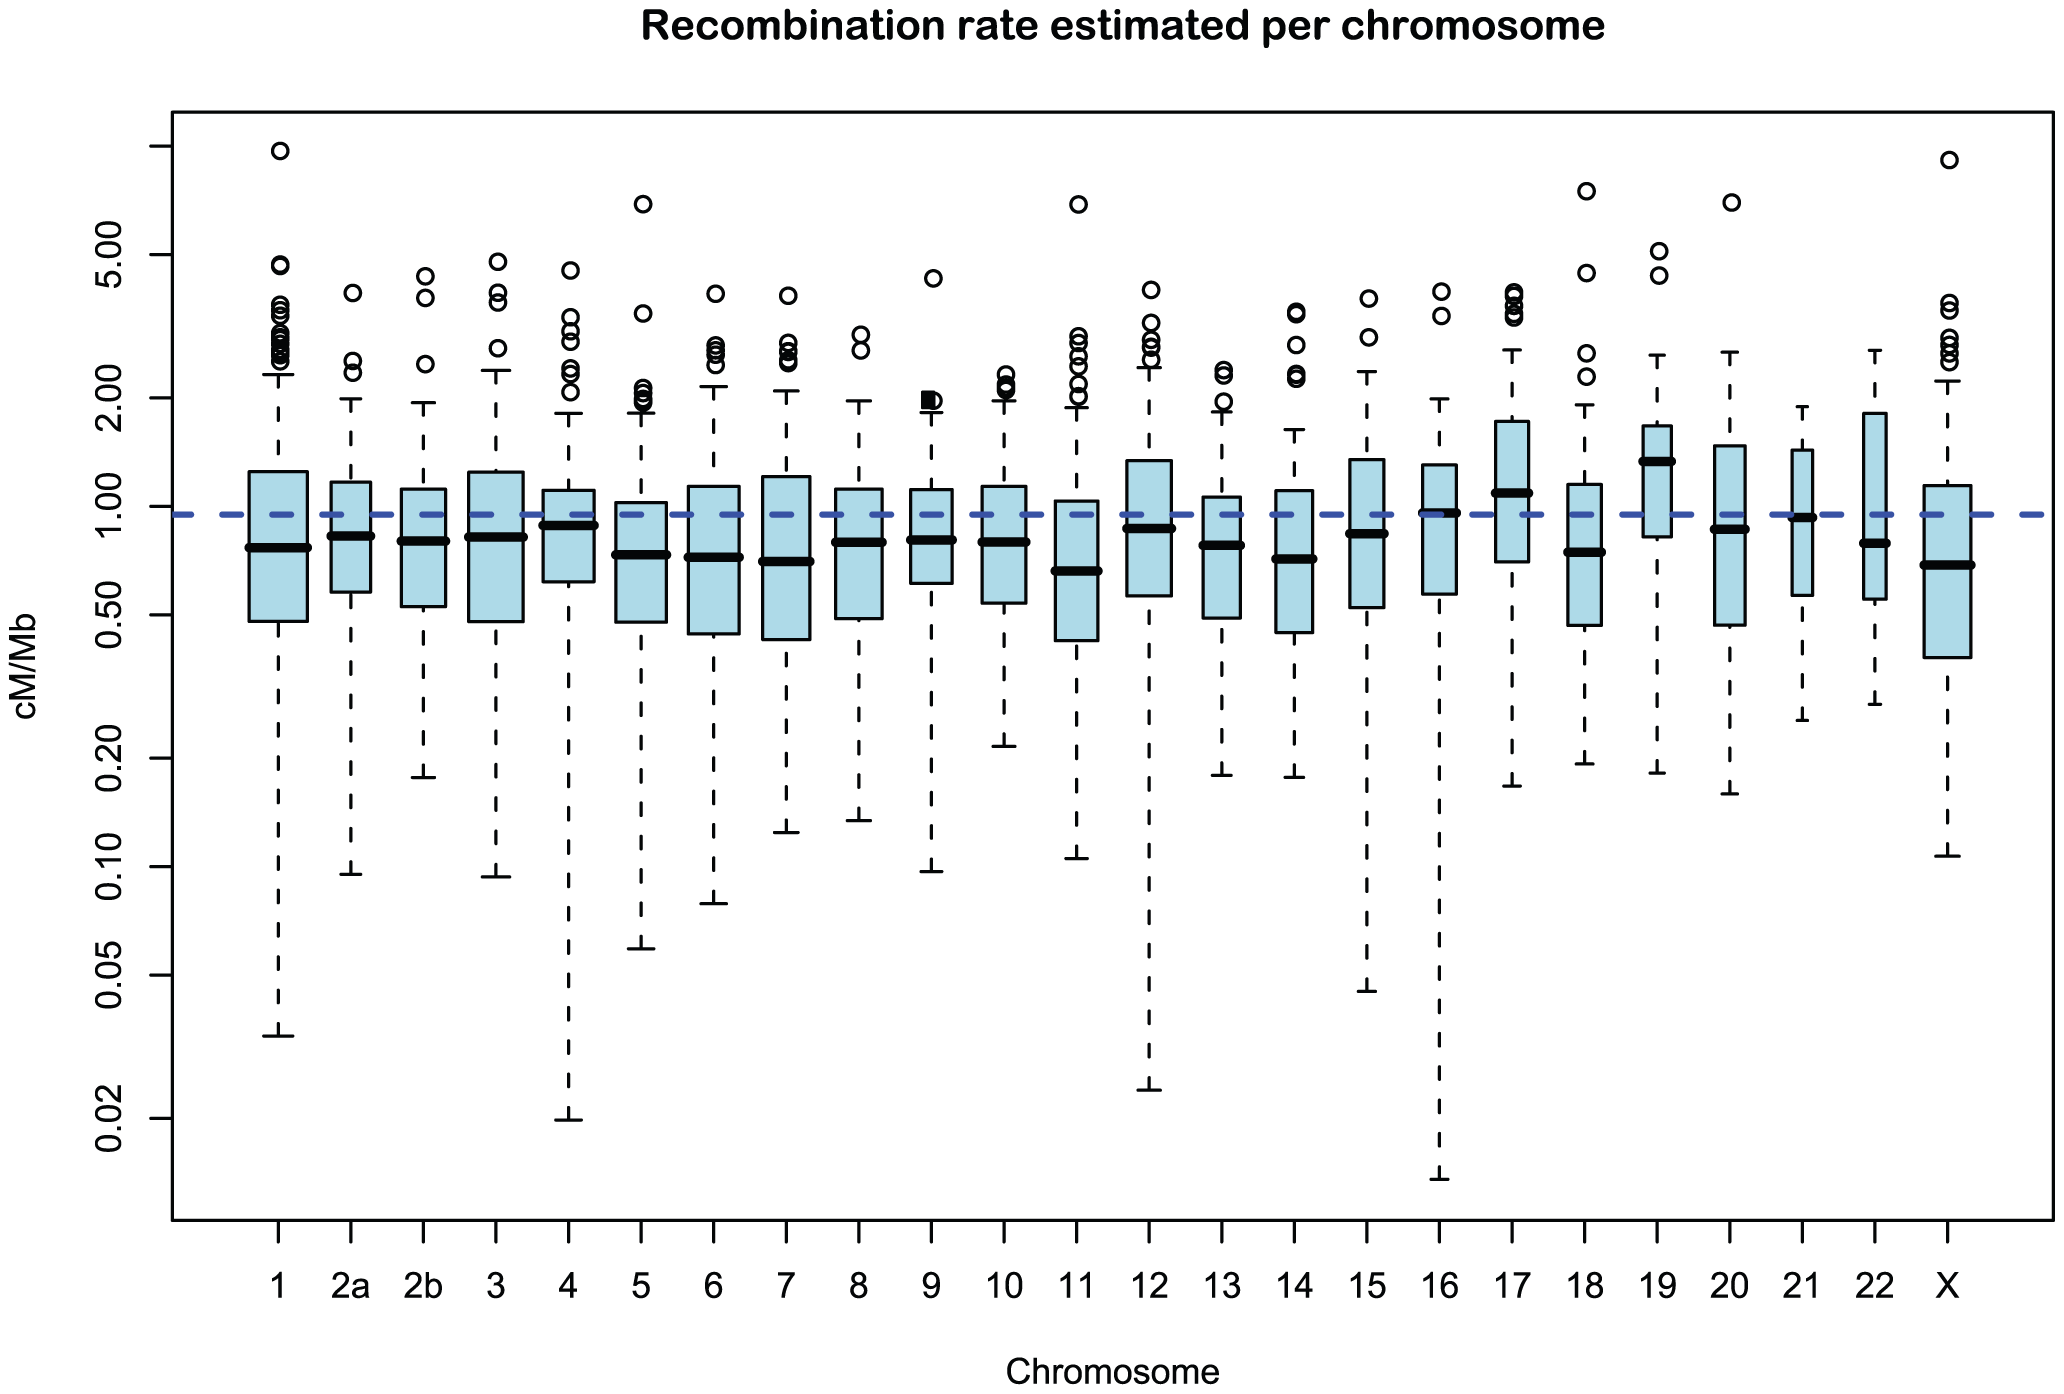 Distribution of recombination rate estimates for each chromosome.